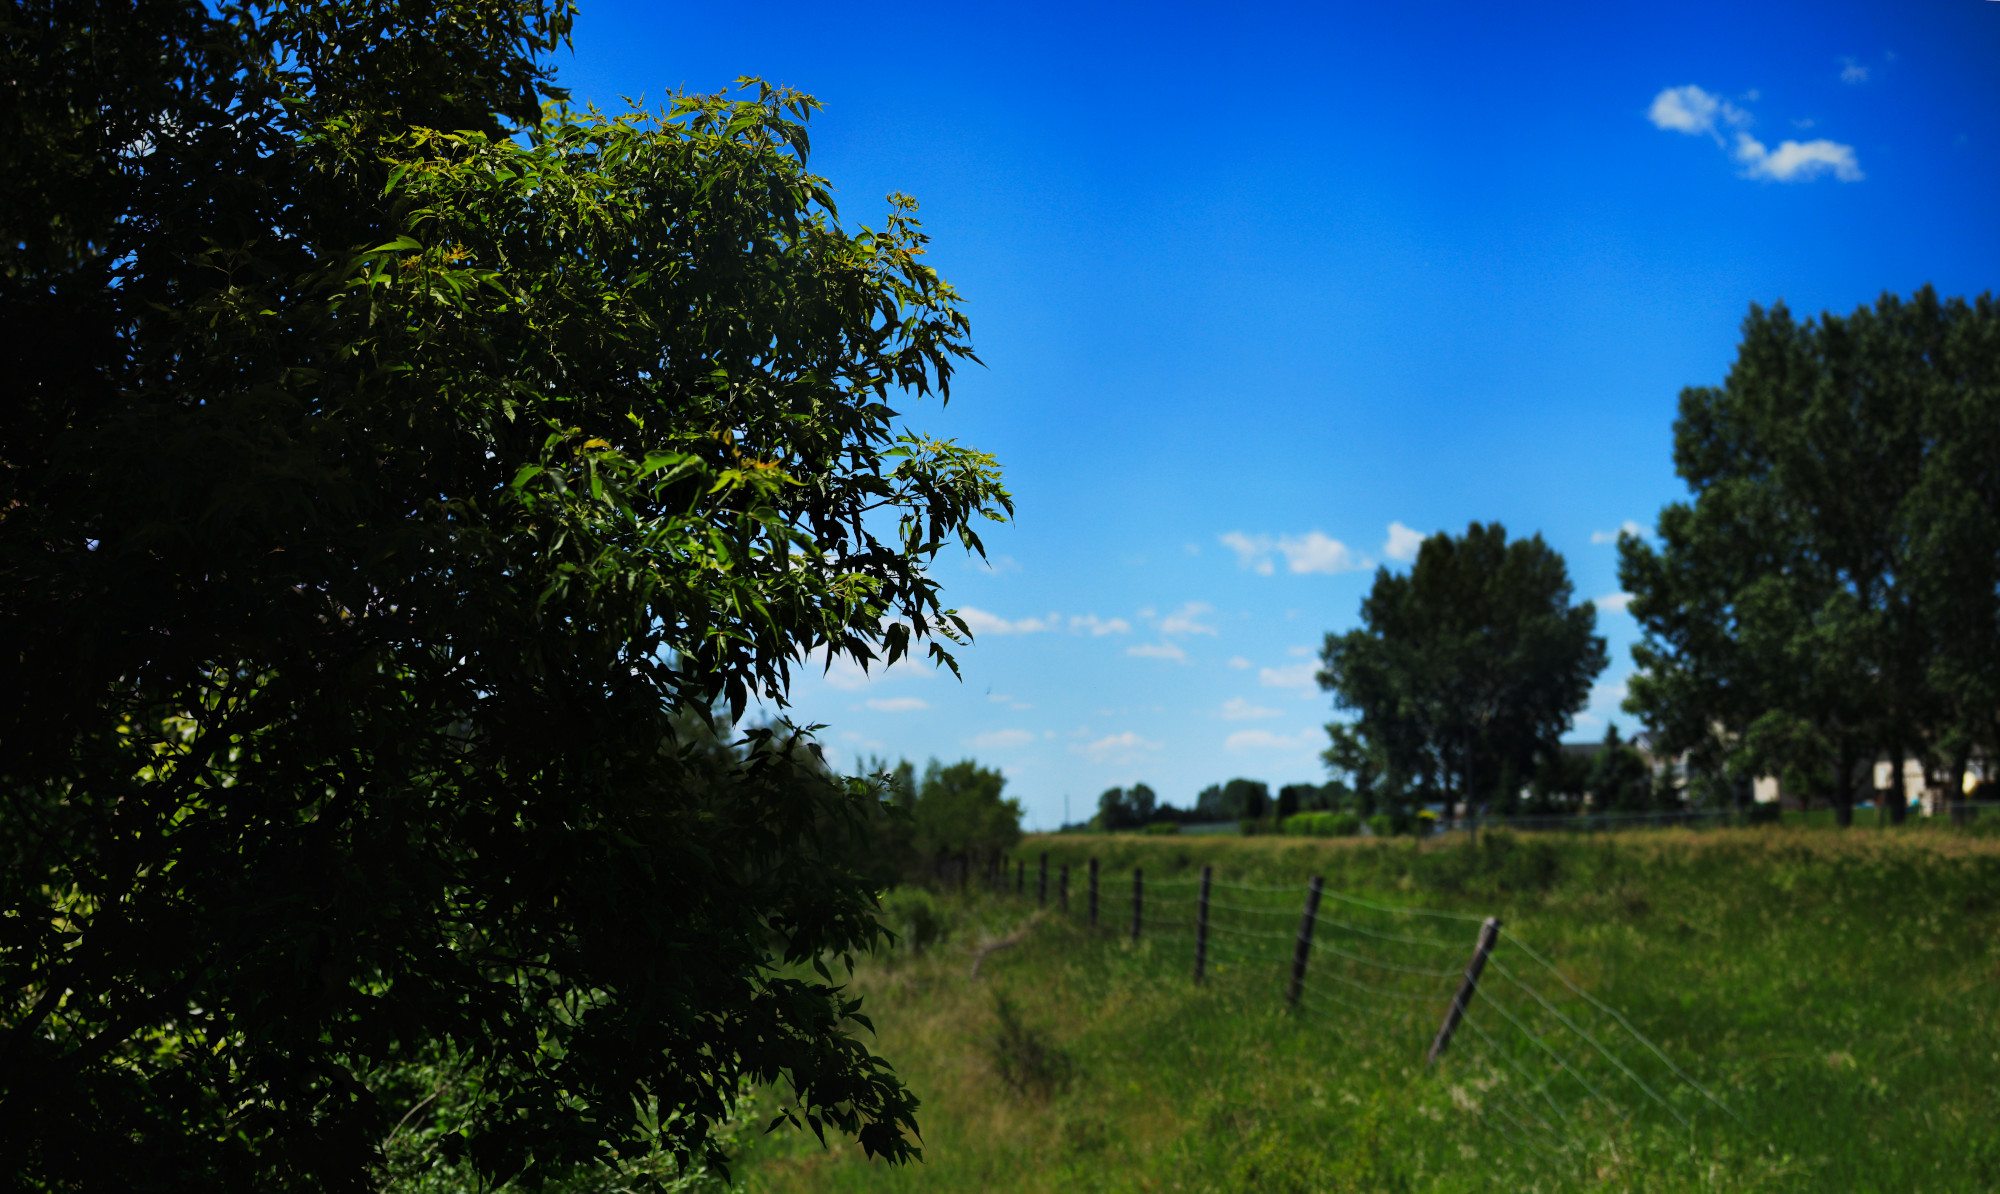 Panorama of the sky and a broken-down fence